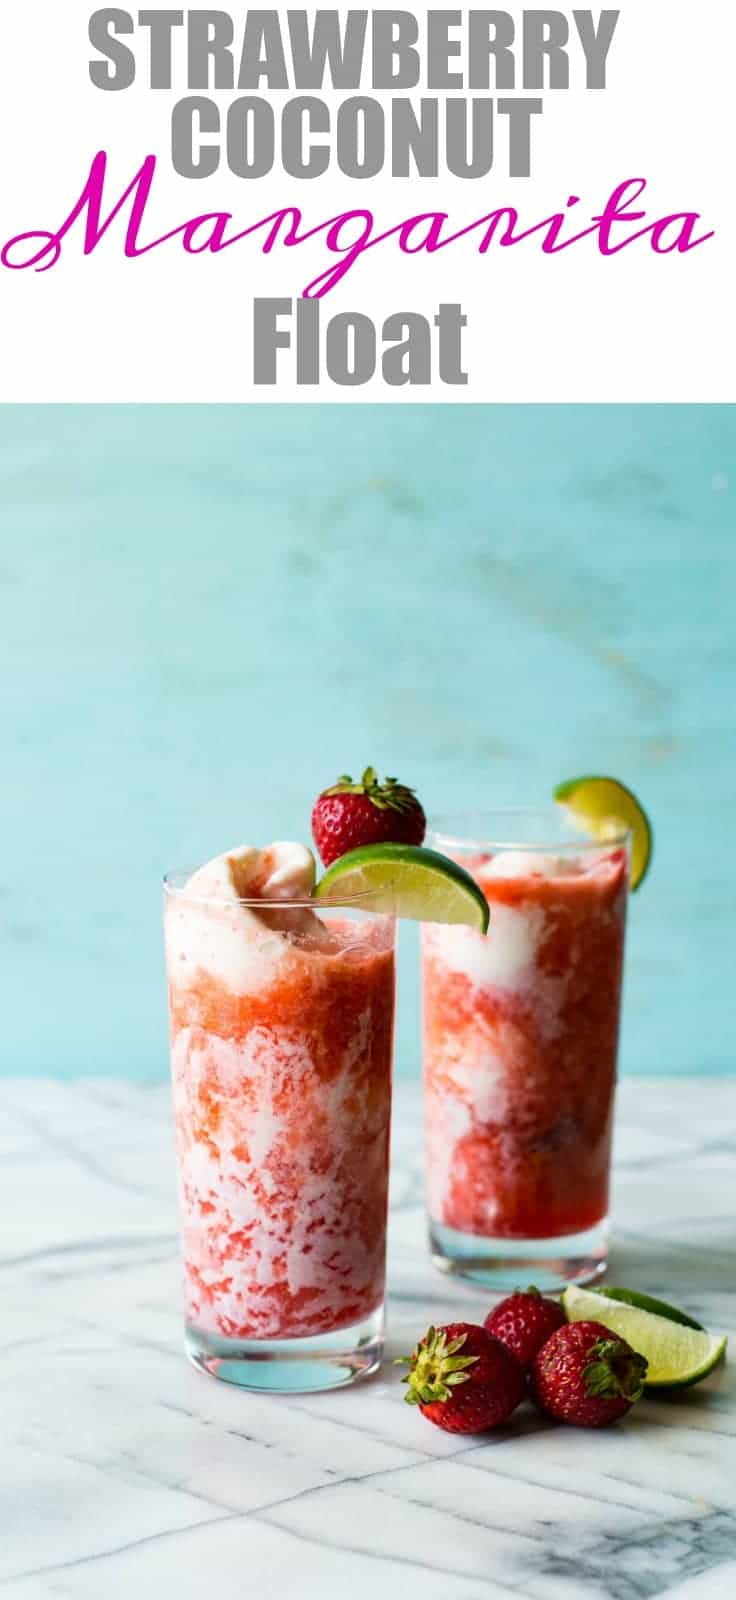 A cold, refreshing strawberry margarita made with fresh strawberries and poured over coconut gelato!